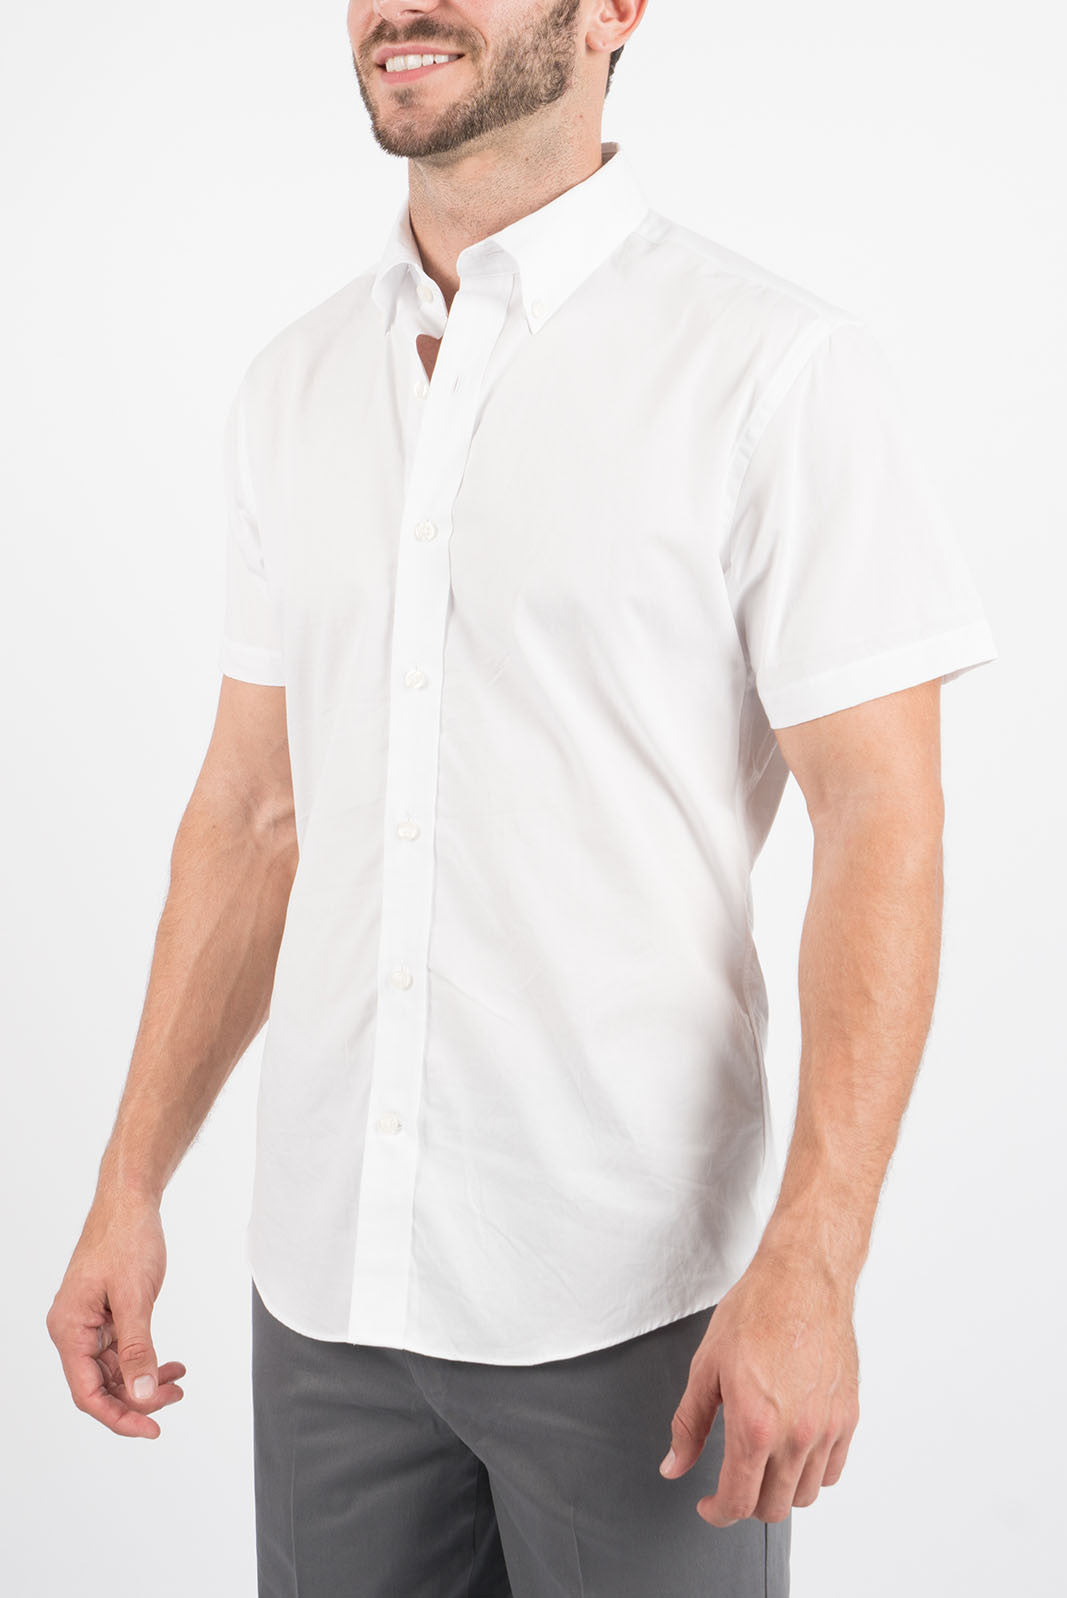 Washed White: Semi-Spread Collar, Short Sleeve